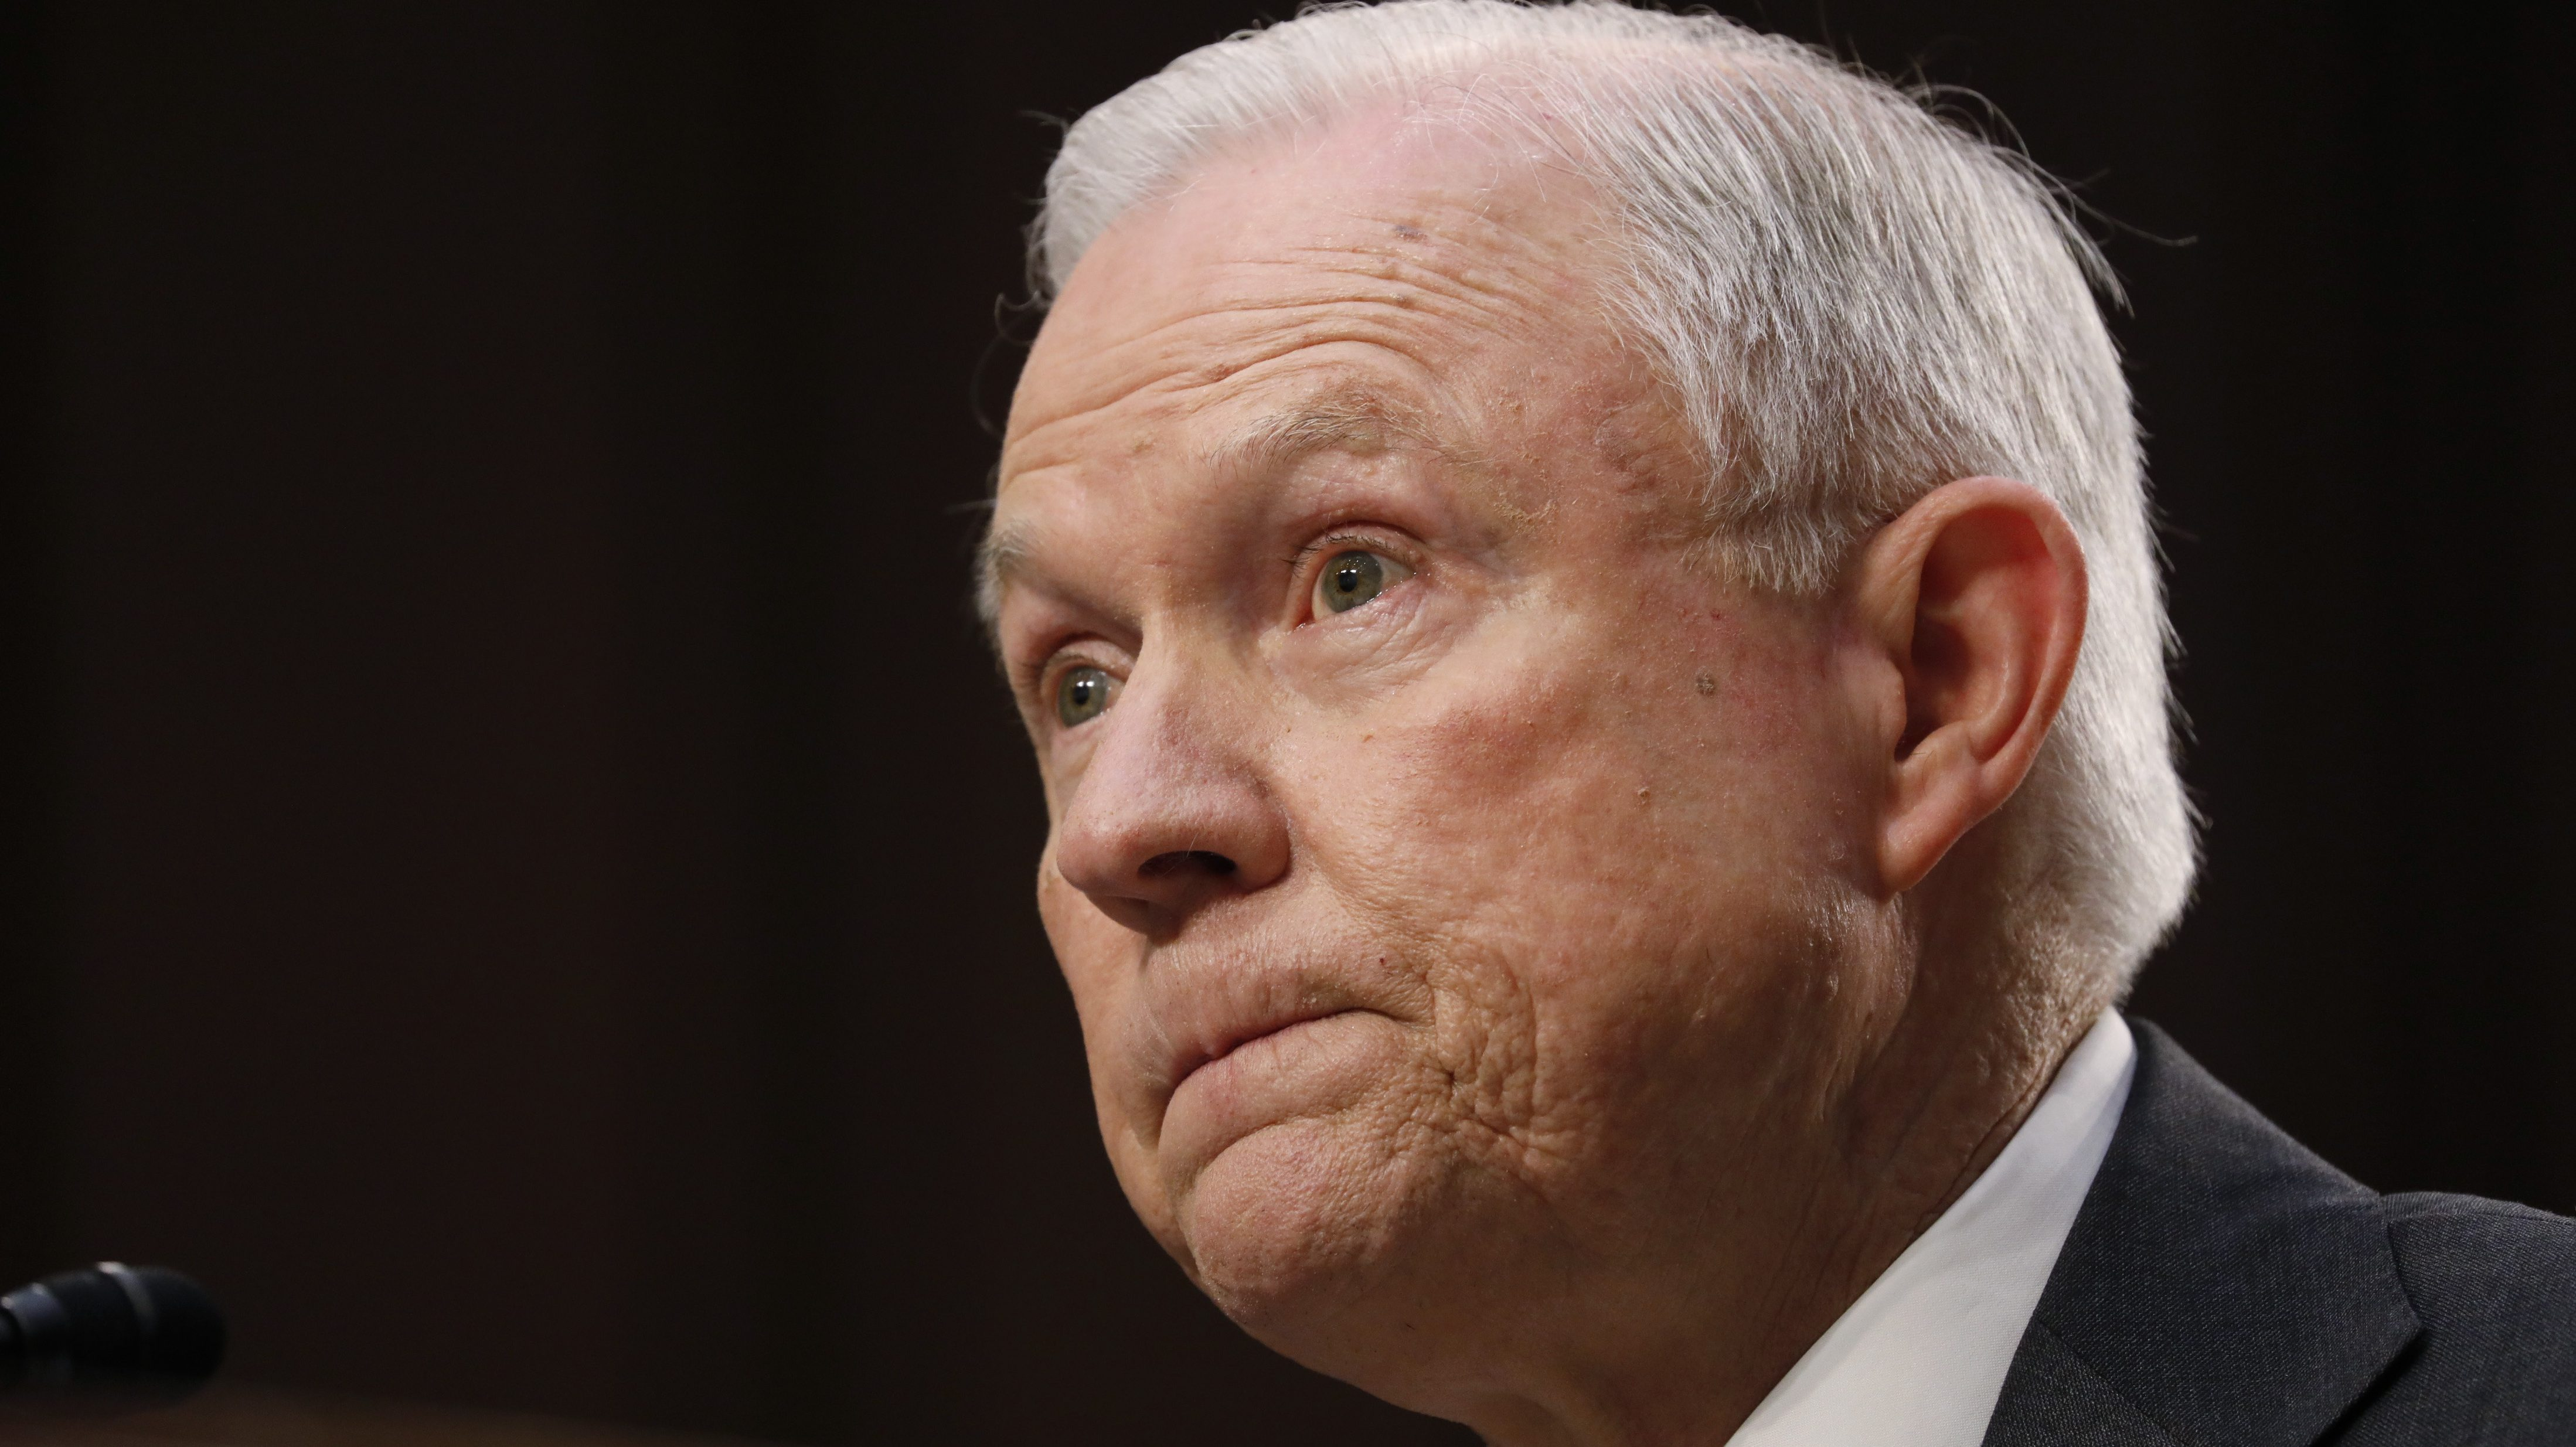 U.S. Attorney General Jeff Sessions testifies before a Senate Intelligence Committee hearing on Capitol Hill in Washington, U.S., June 13, 2017. REUTERS/Aaron P. Bernstein - RTS16Y0D